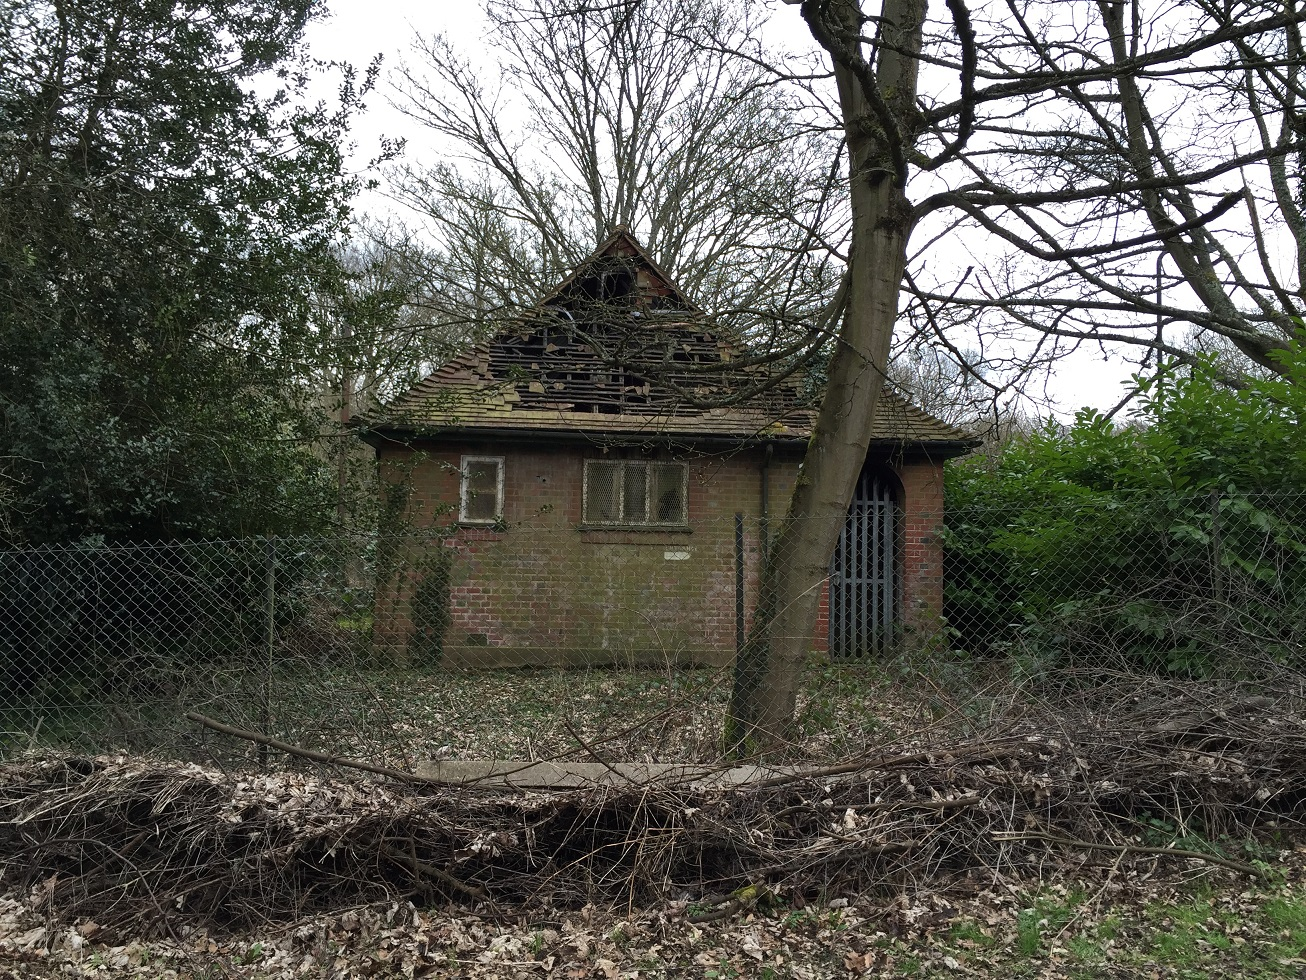 Derelict building, near Bentley Priory